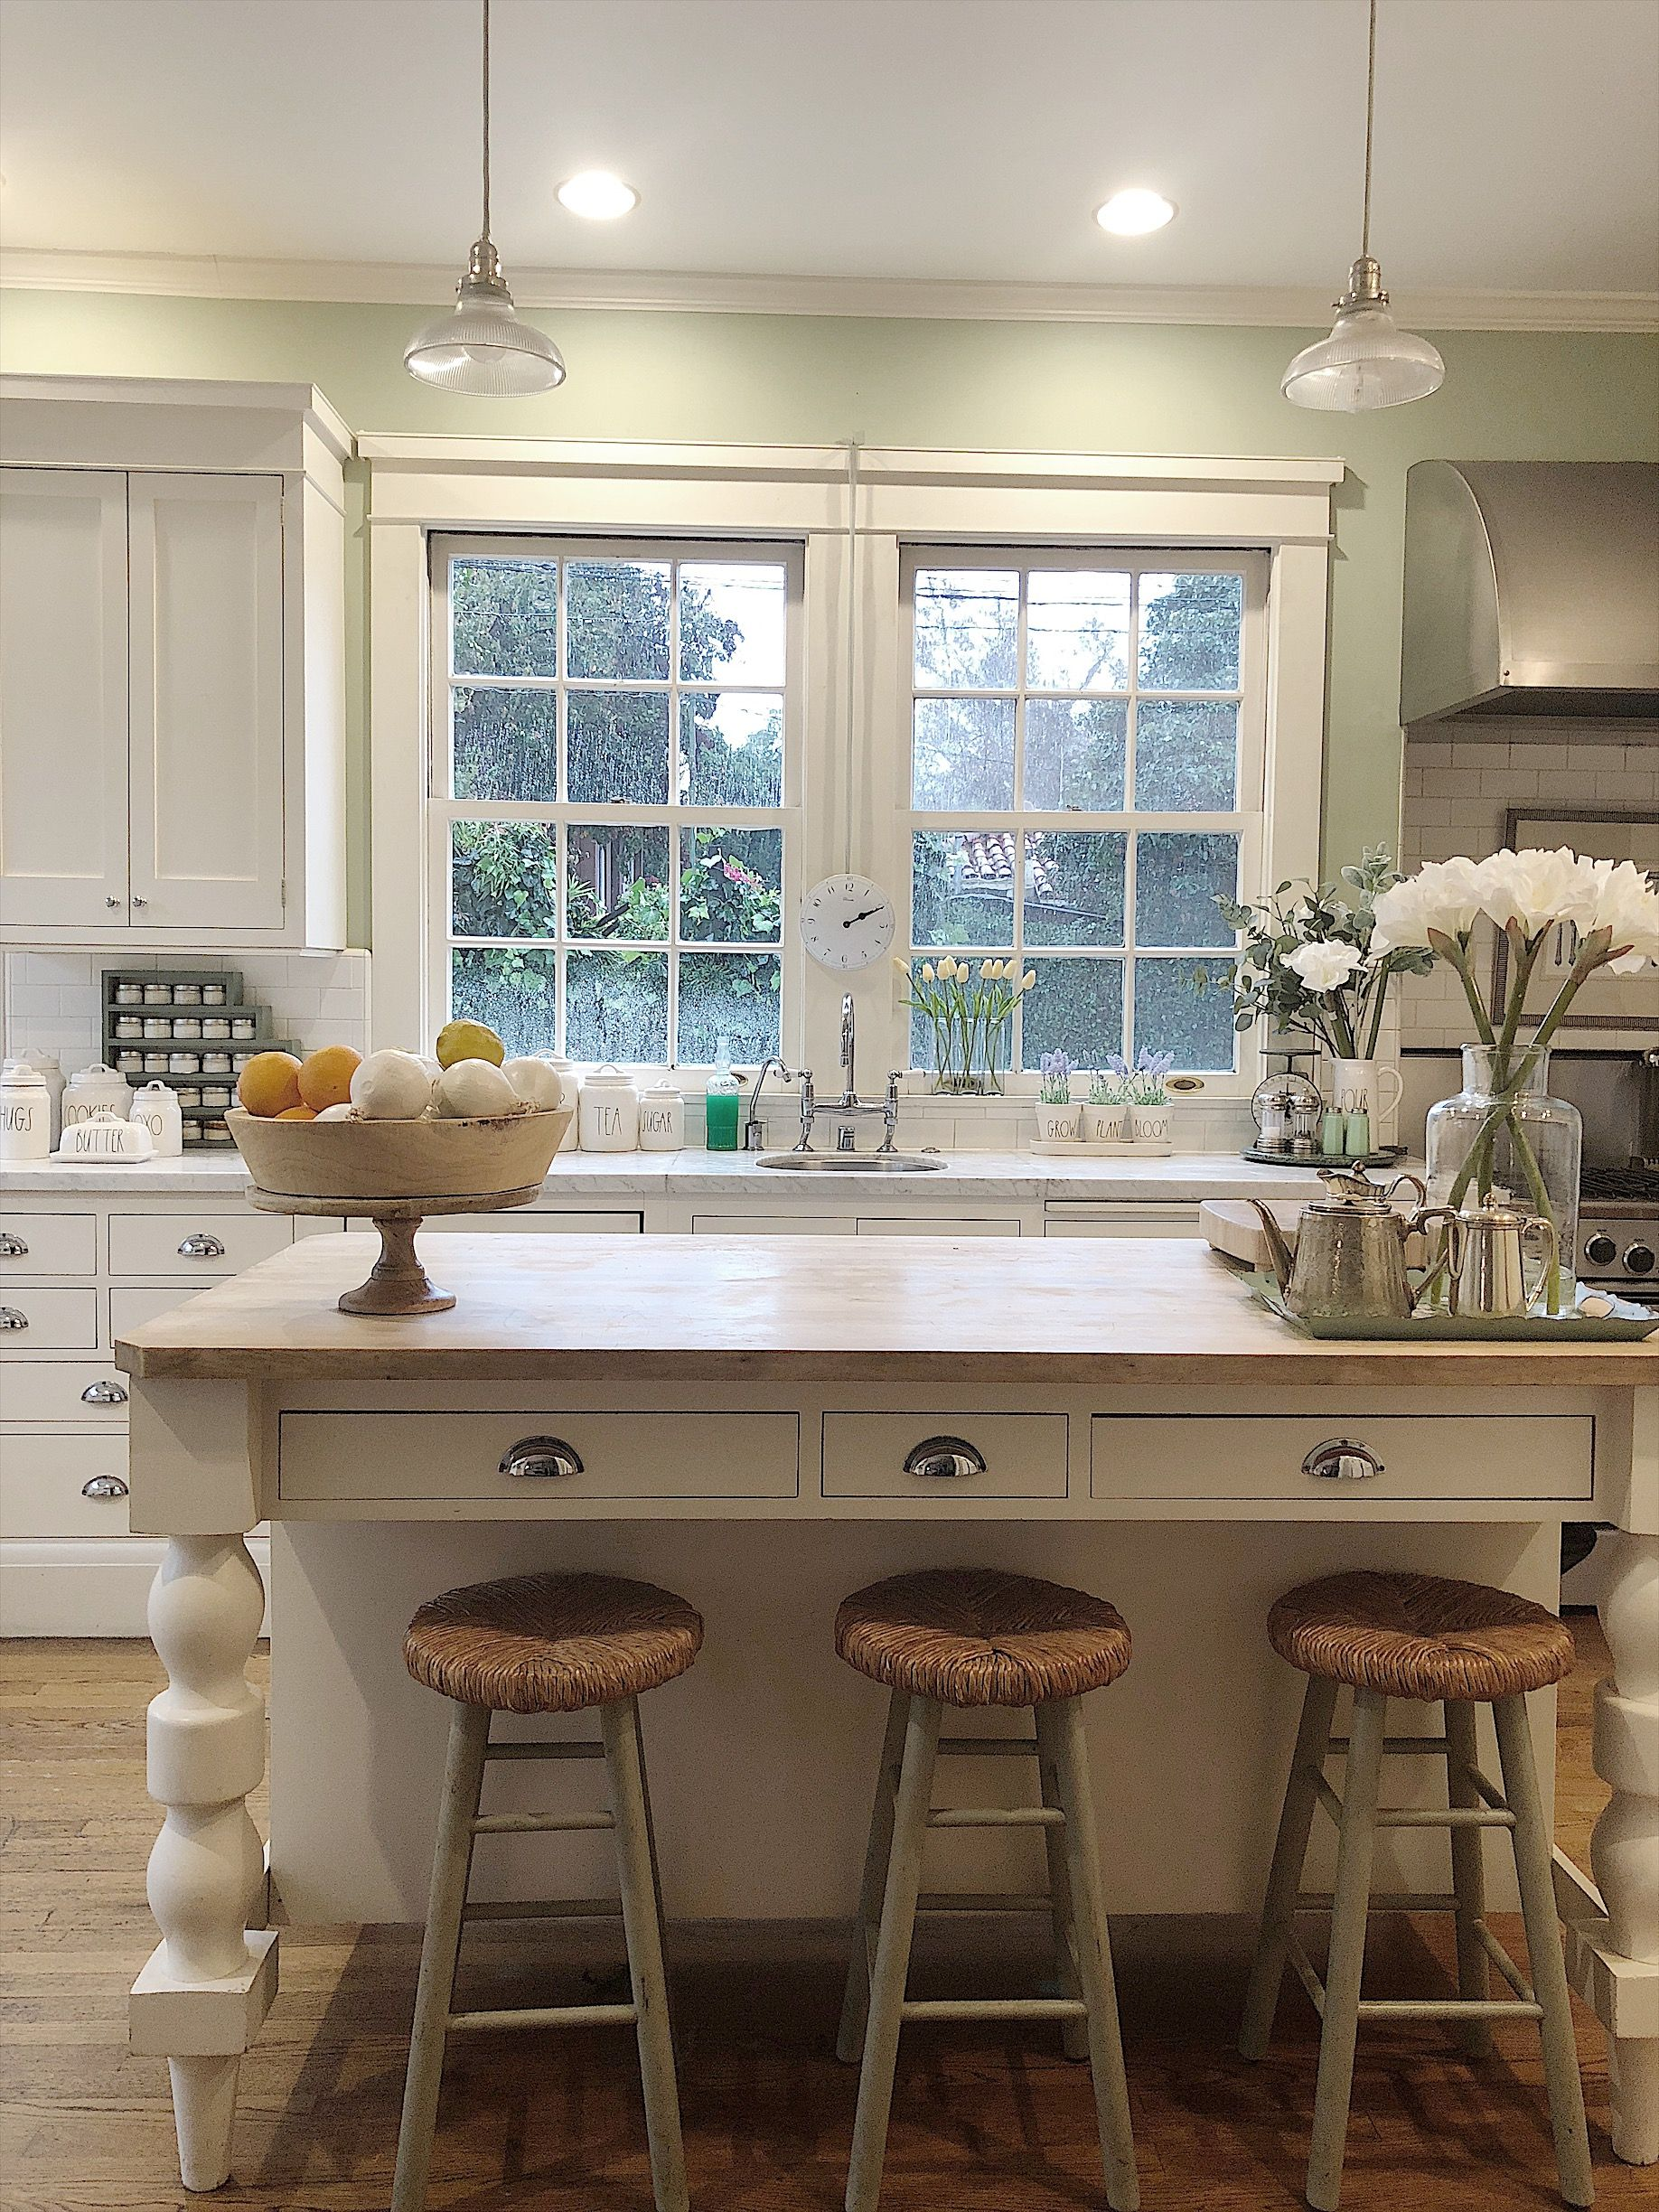 Styling The Kitchen For Winter Season Design Decor Remodel